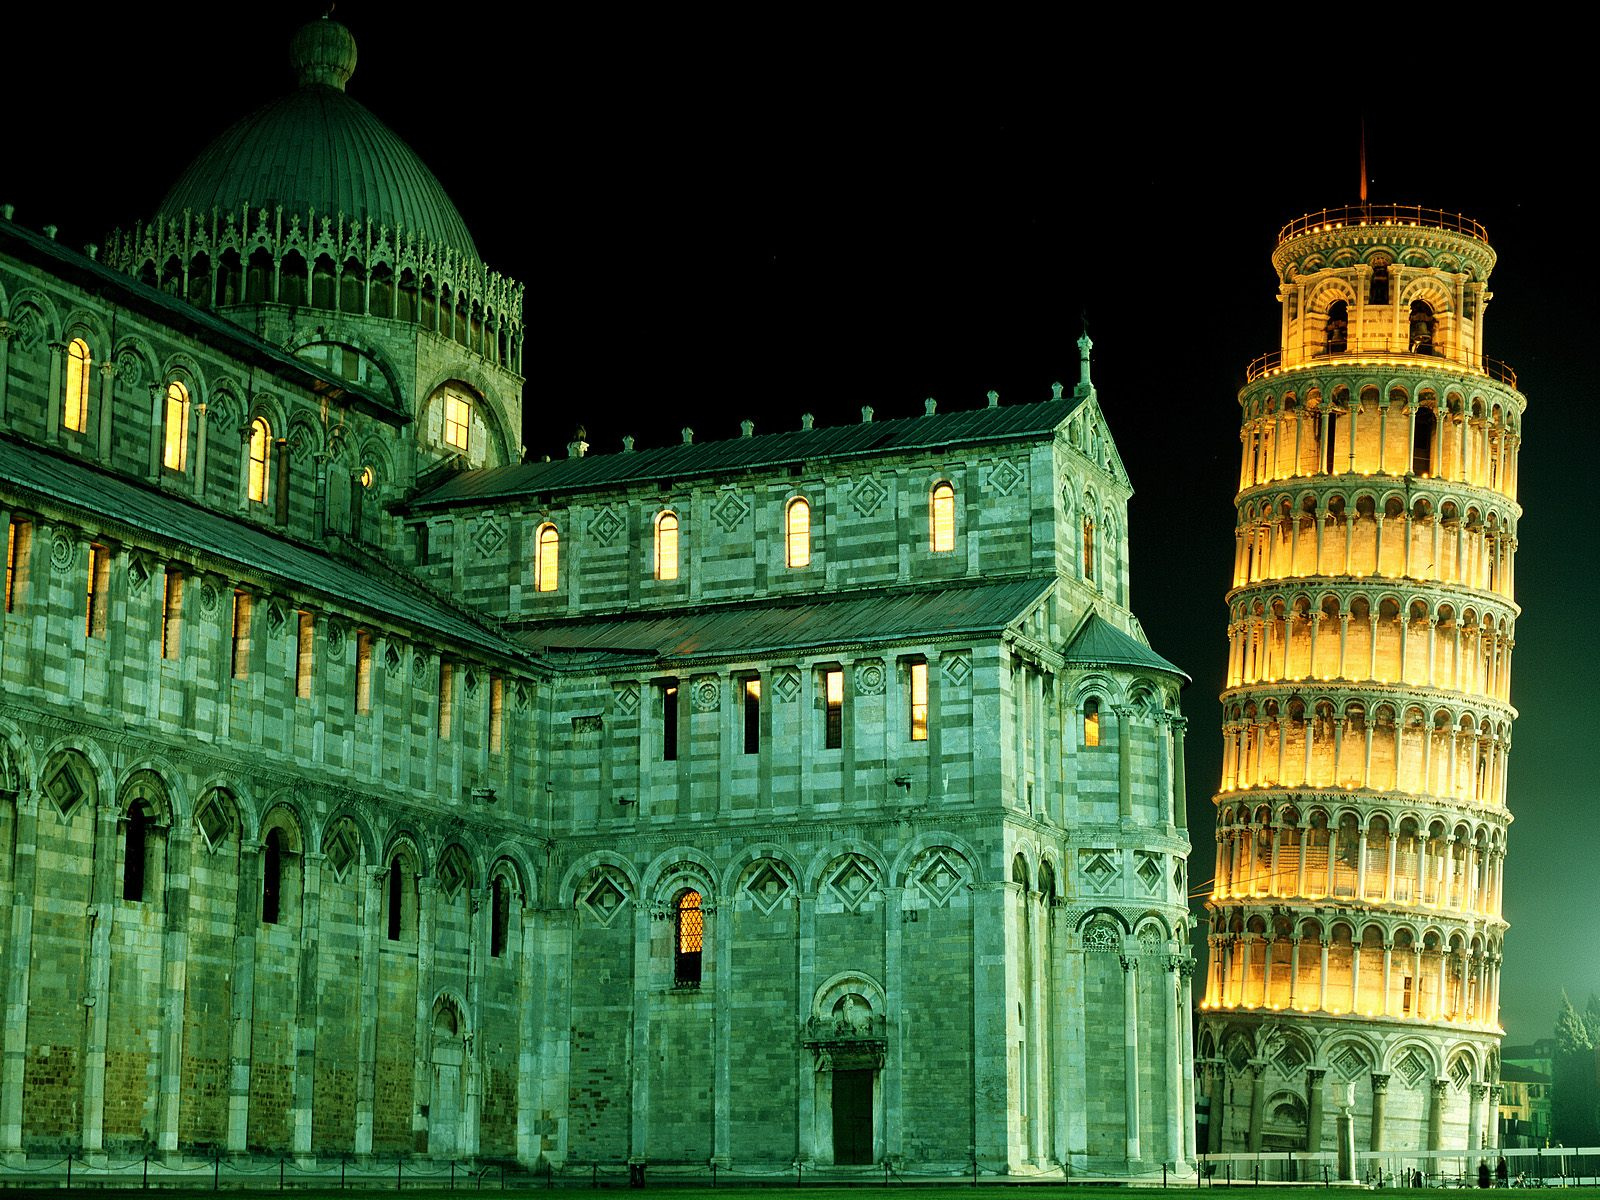 Leaning Tower Italy 461.54 Kb